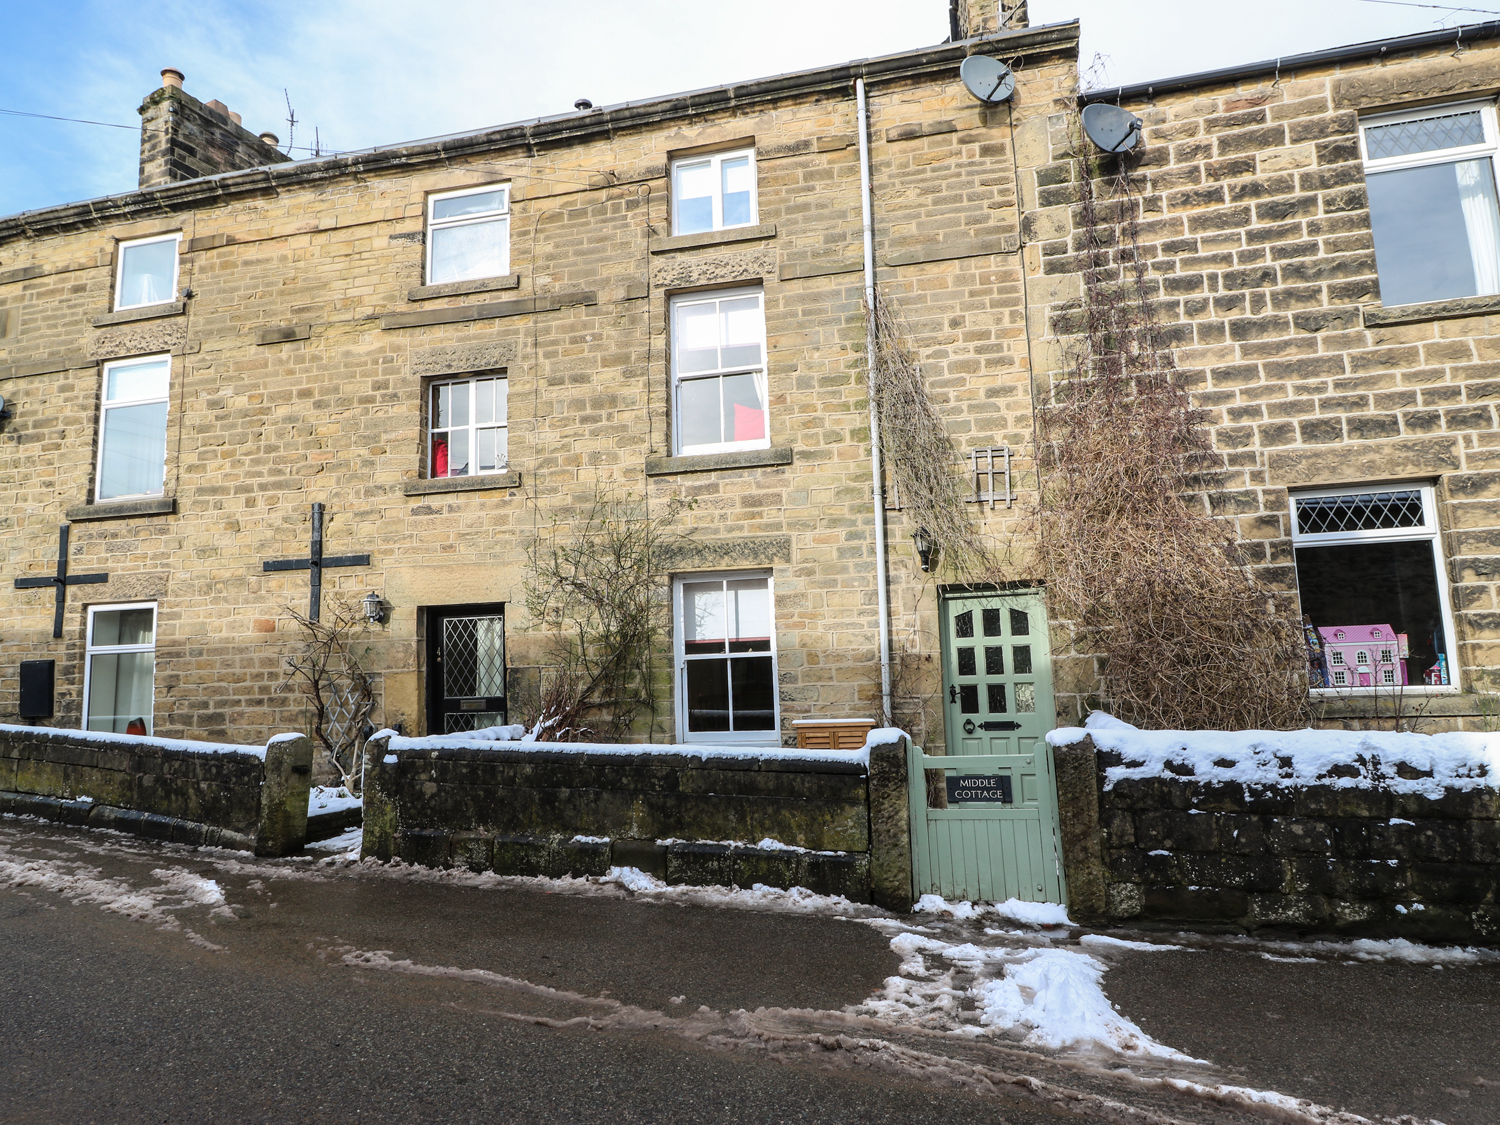 3 bedroom Cottage for rent in Eyam